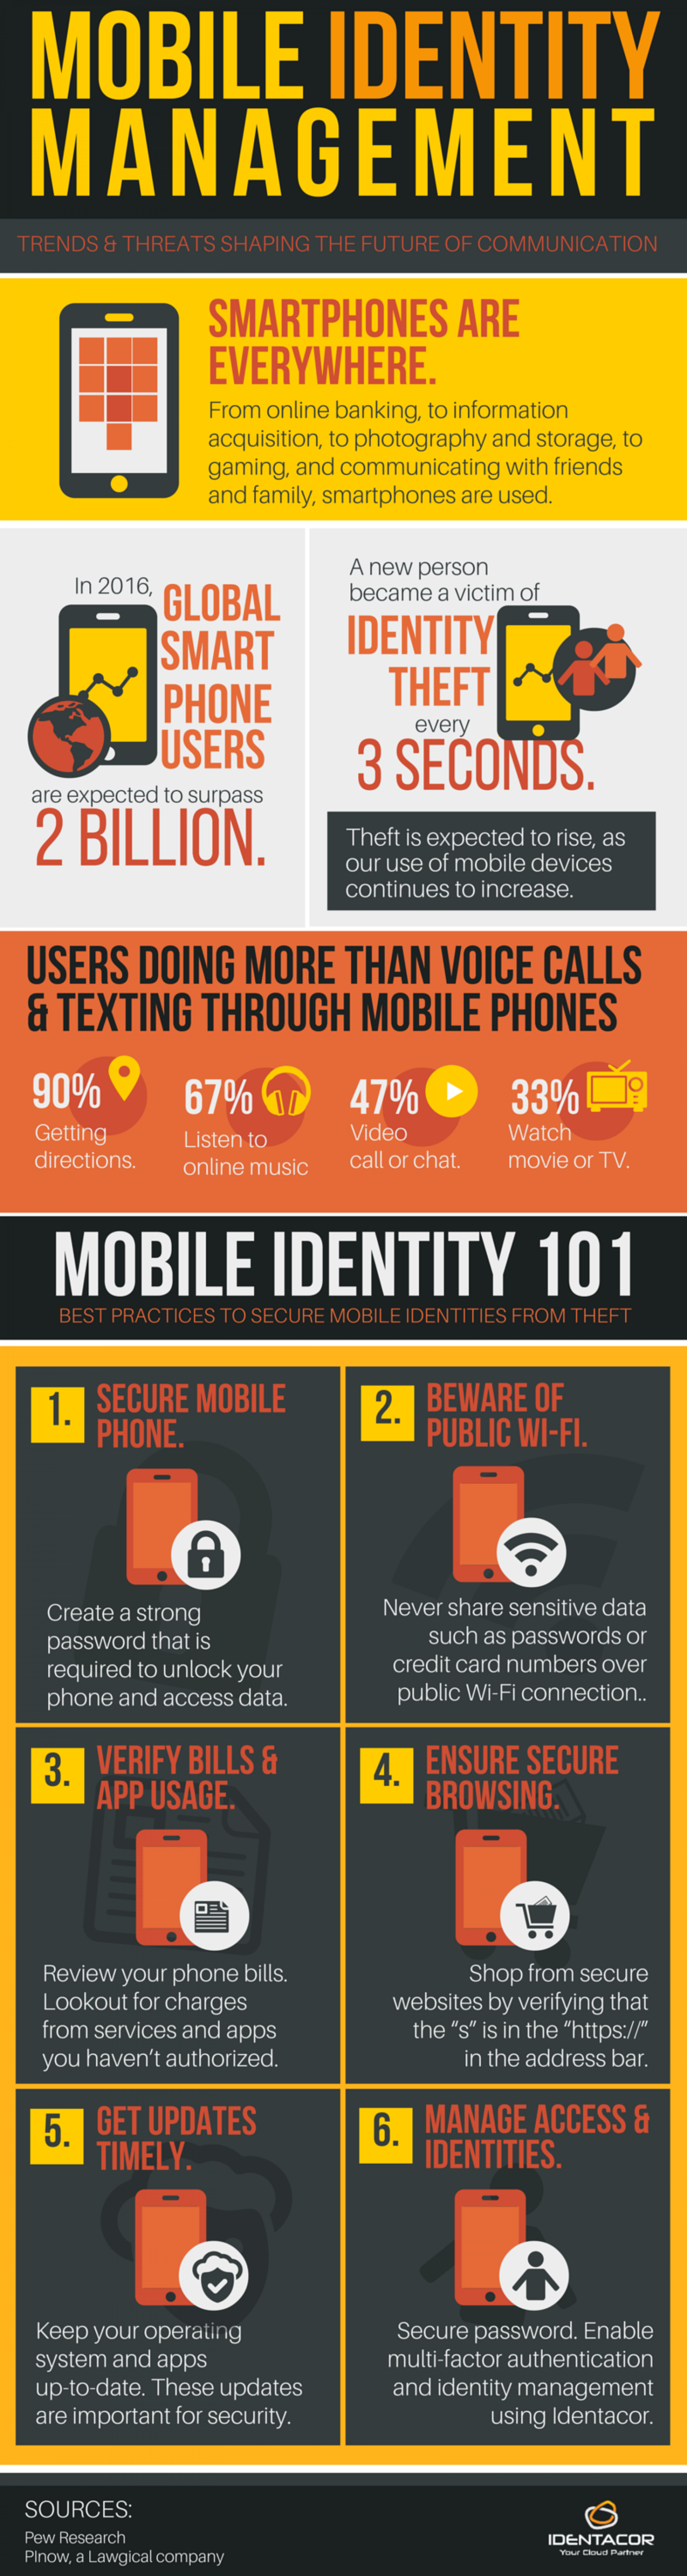 Mobile Identity Management - Trends and Threats! Infographic